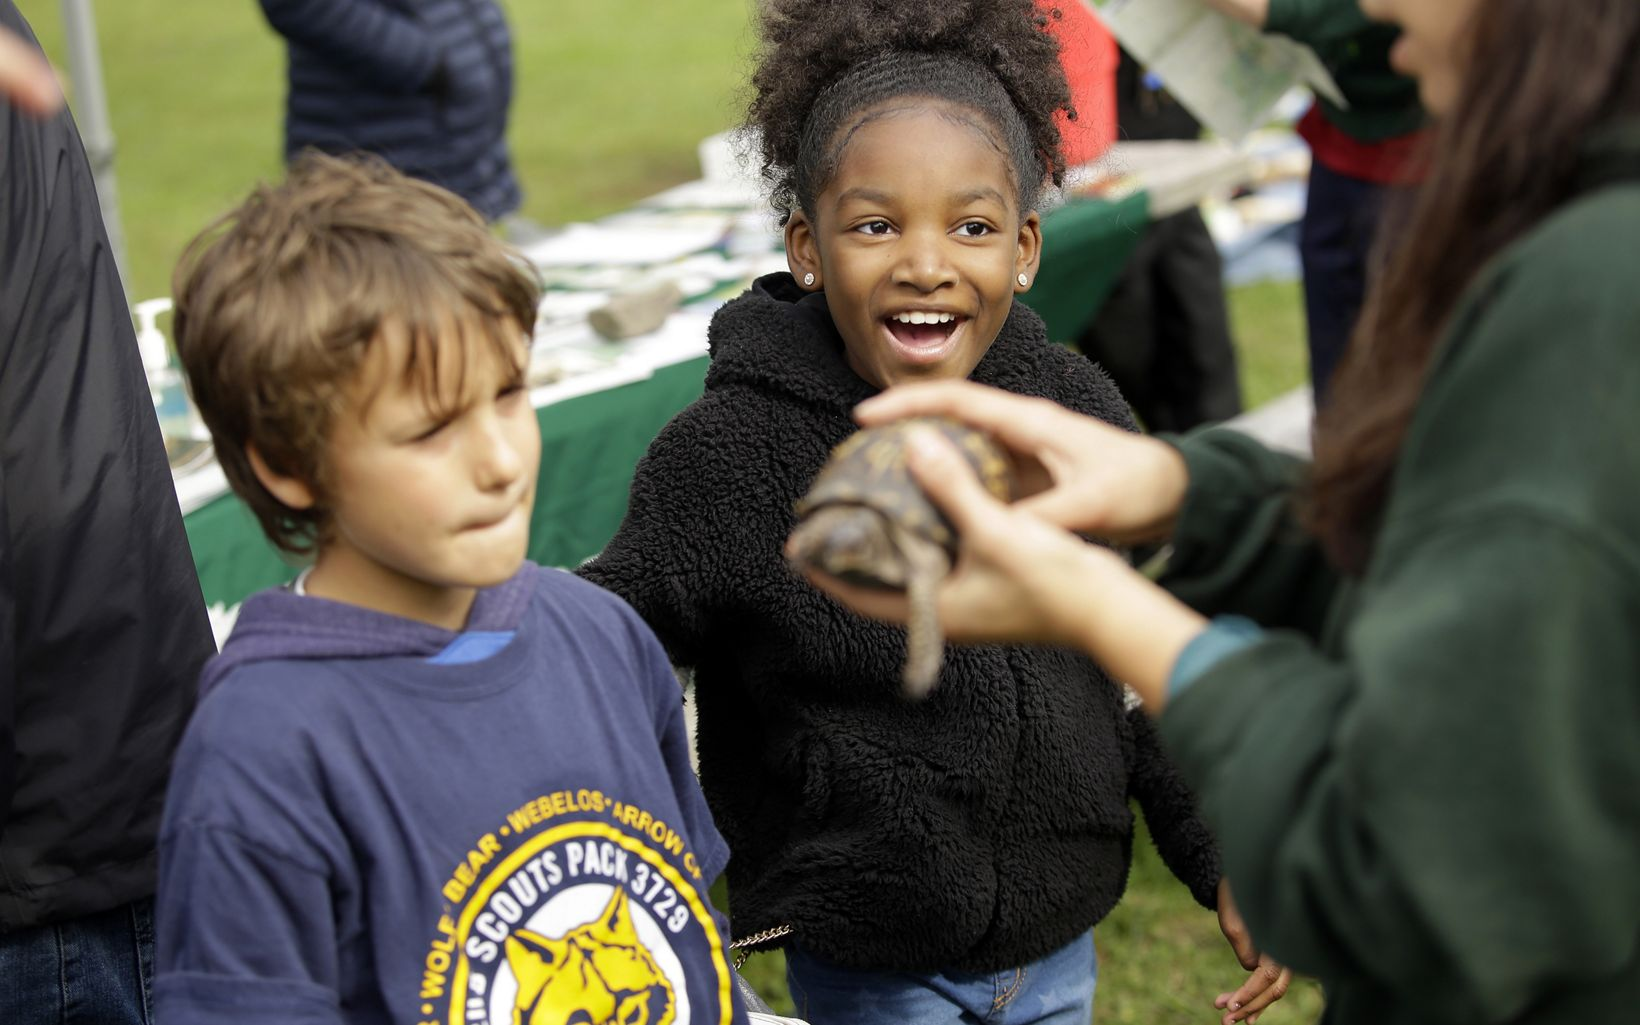 Children at the Awe of Nature Festival